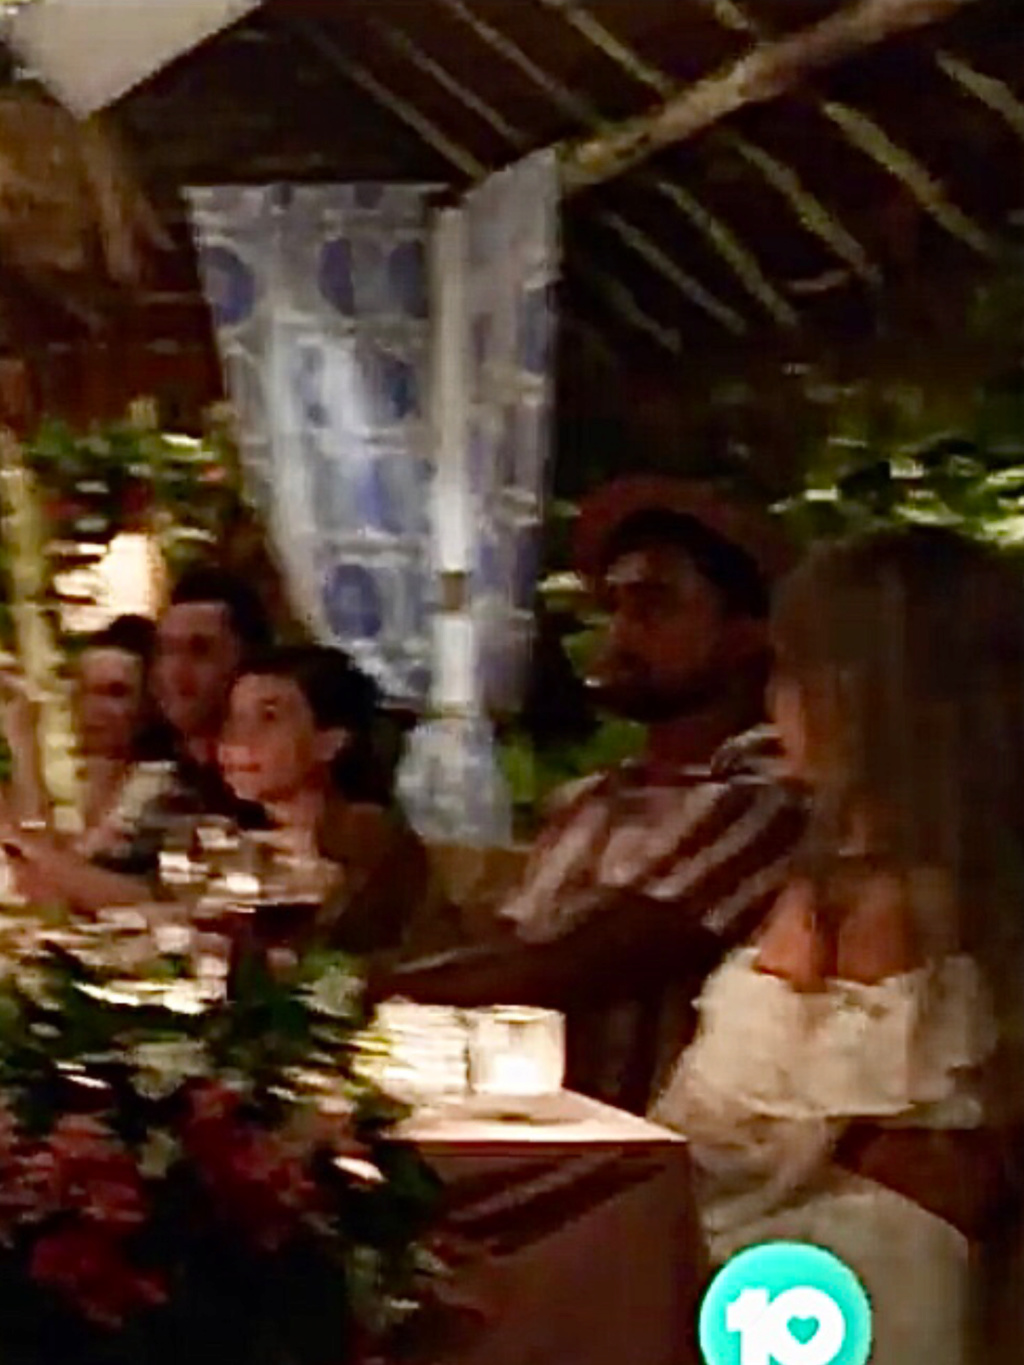 Bachelor In Paradise Australia - Season 3 - S/Caps - *Sleuthing Spoilers* - Page 6 Ecda5210